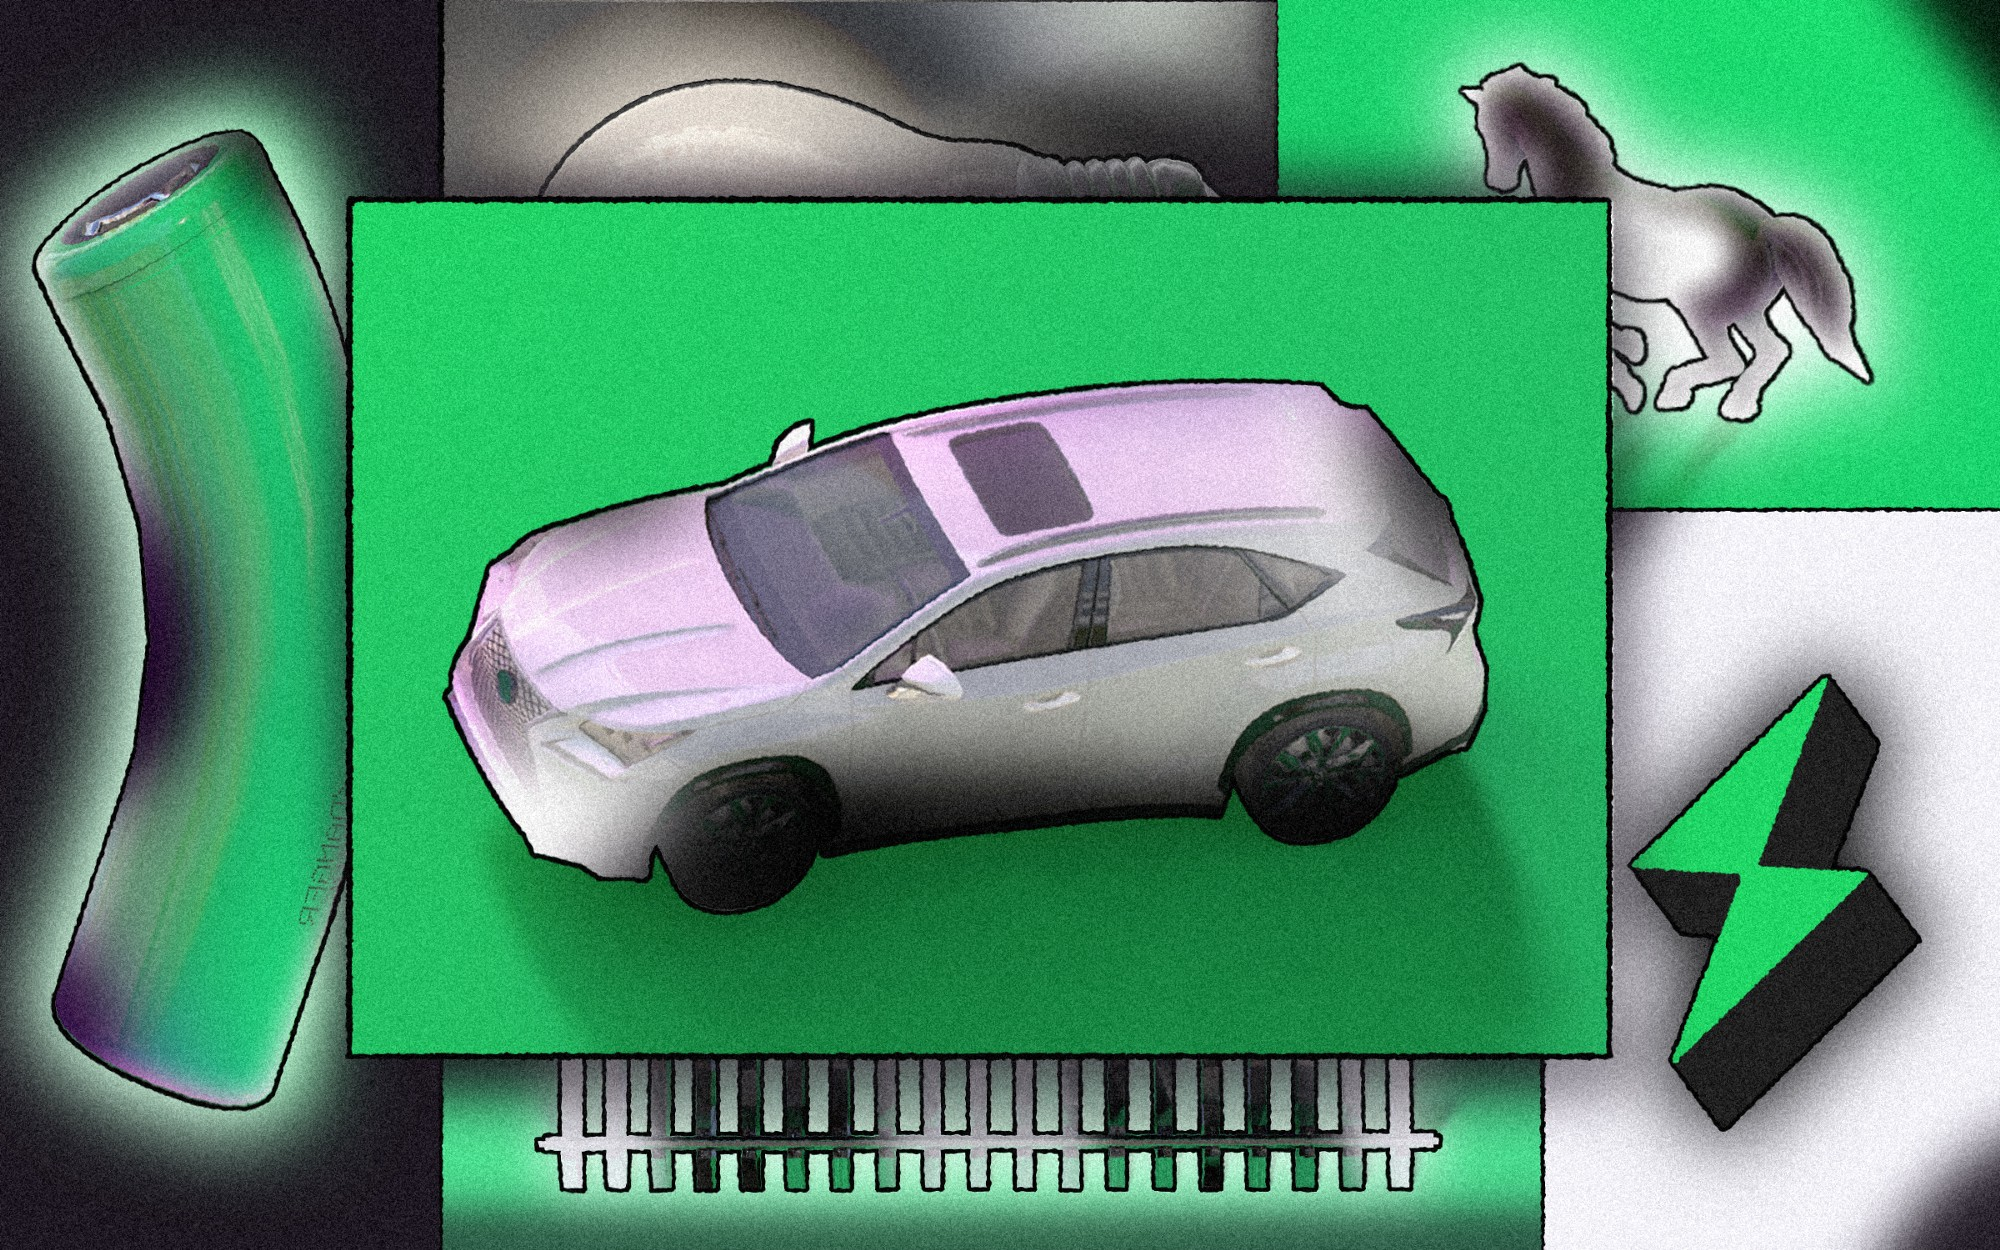 An illustrated collage with an electric vehicle, a battery, a charge symbol, a lightbulb, and more.